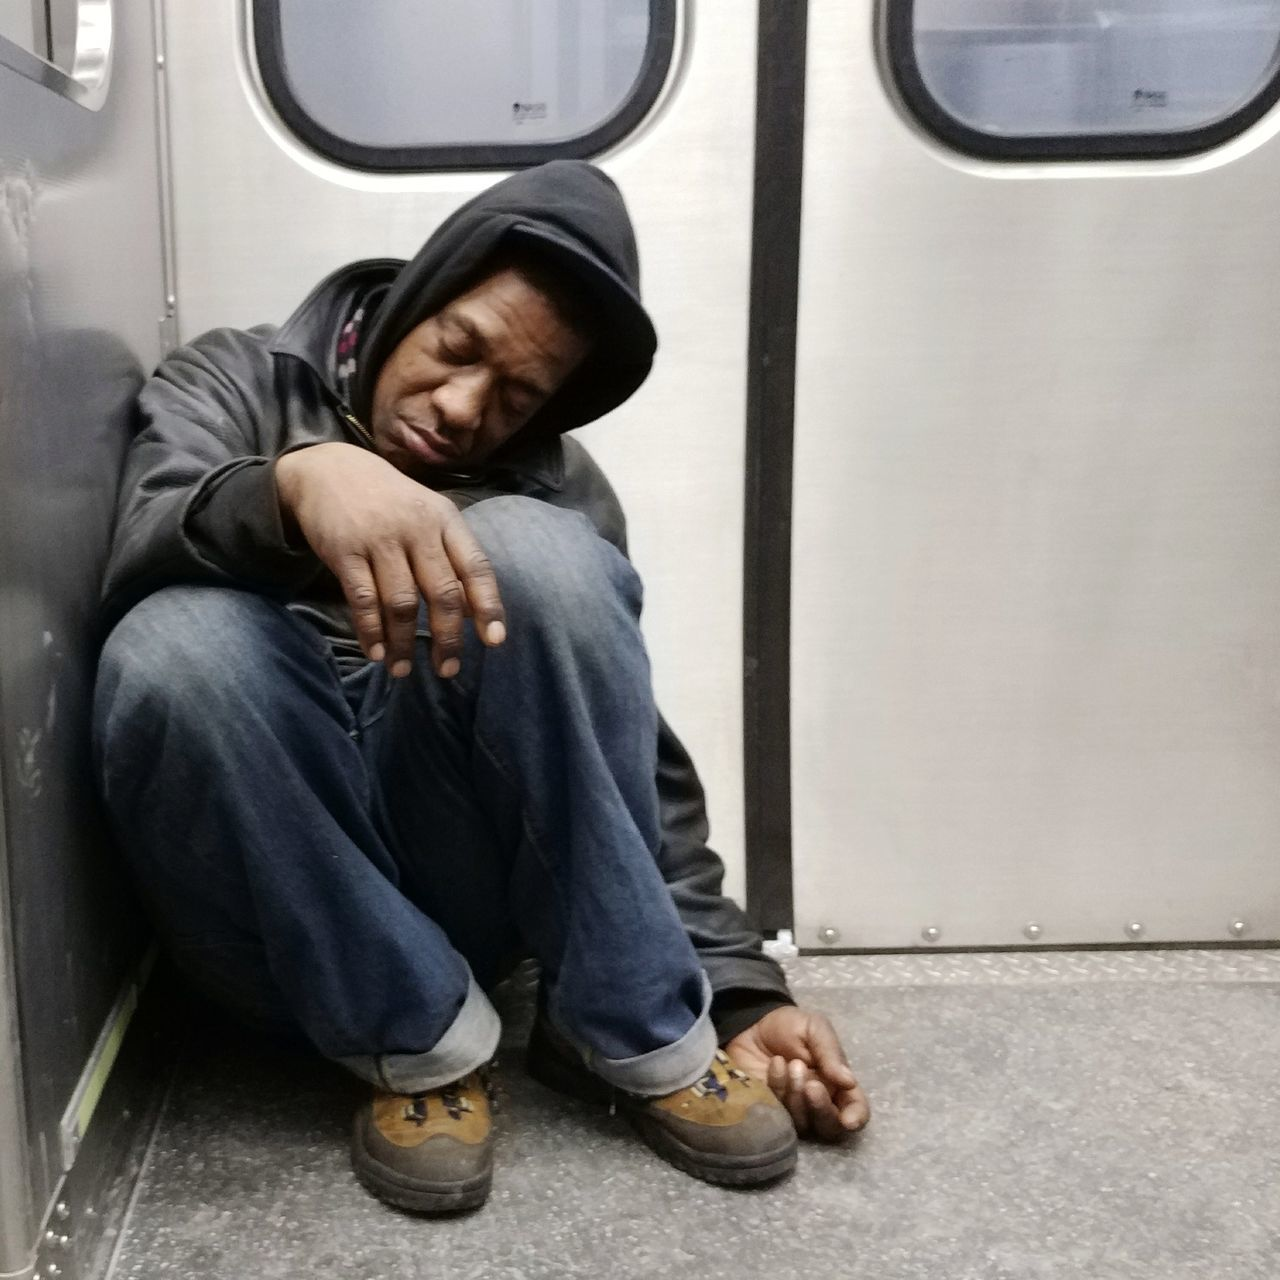 sitting, one person, real people, transportation, young adult, casual clothing, sleeping, lifestyles, full length, young men, tensed, day